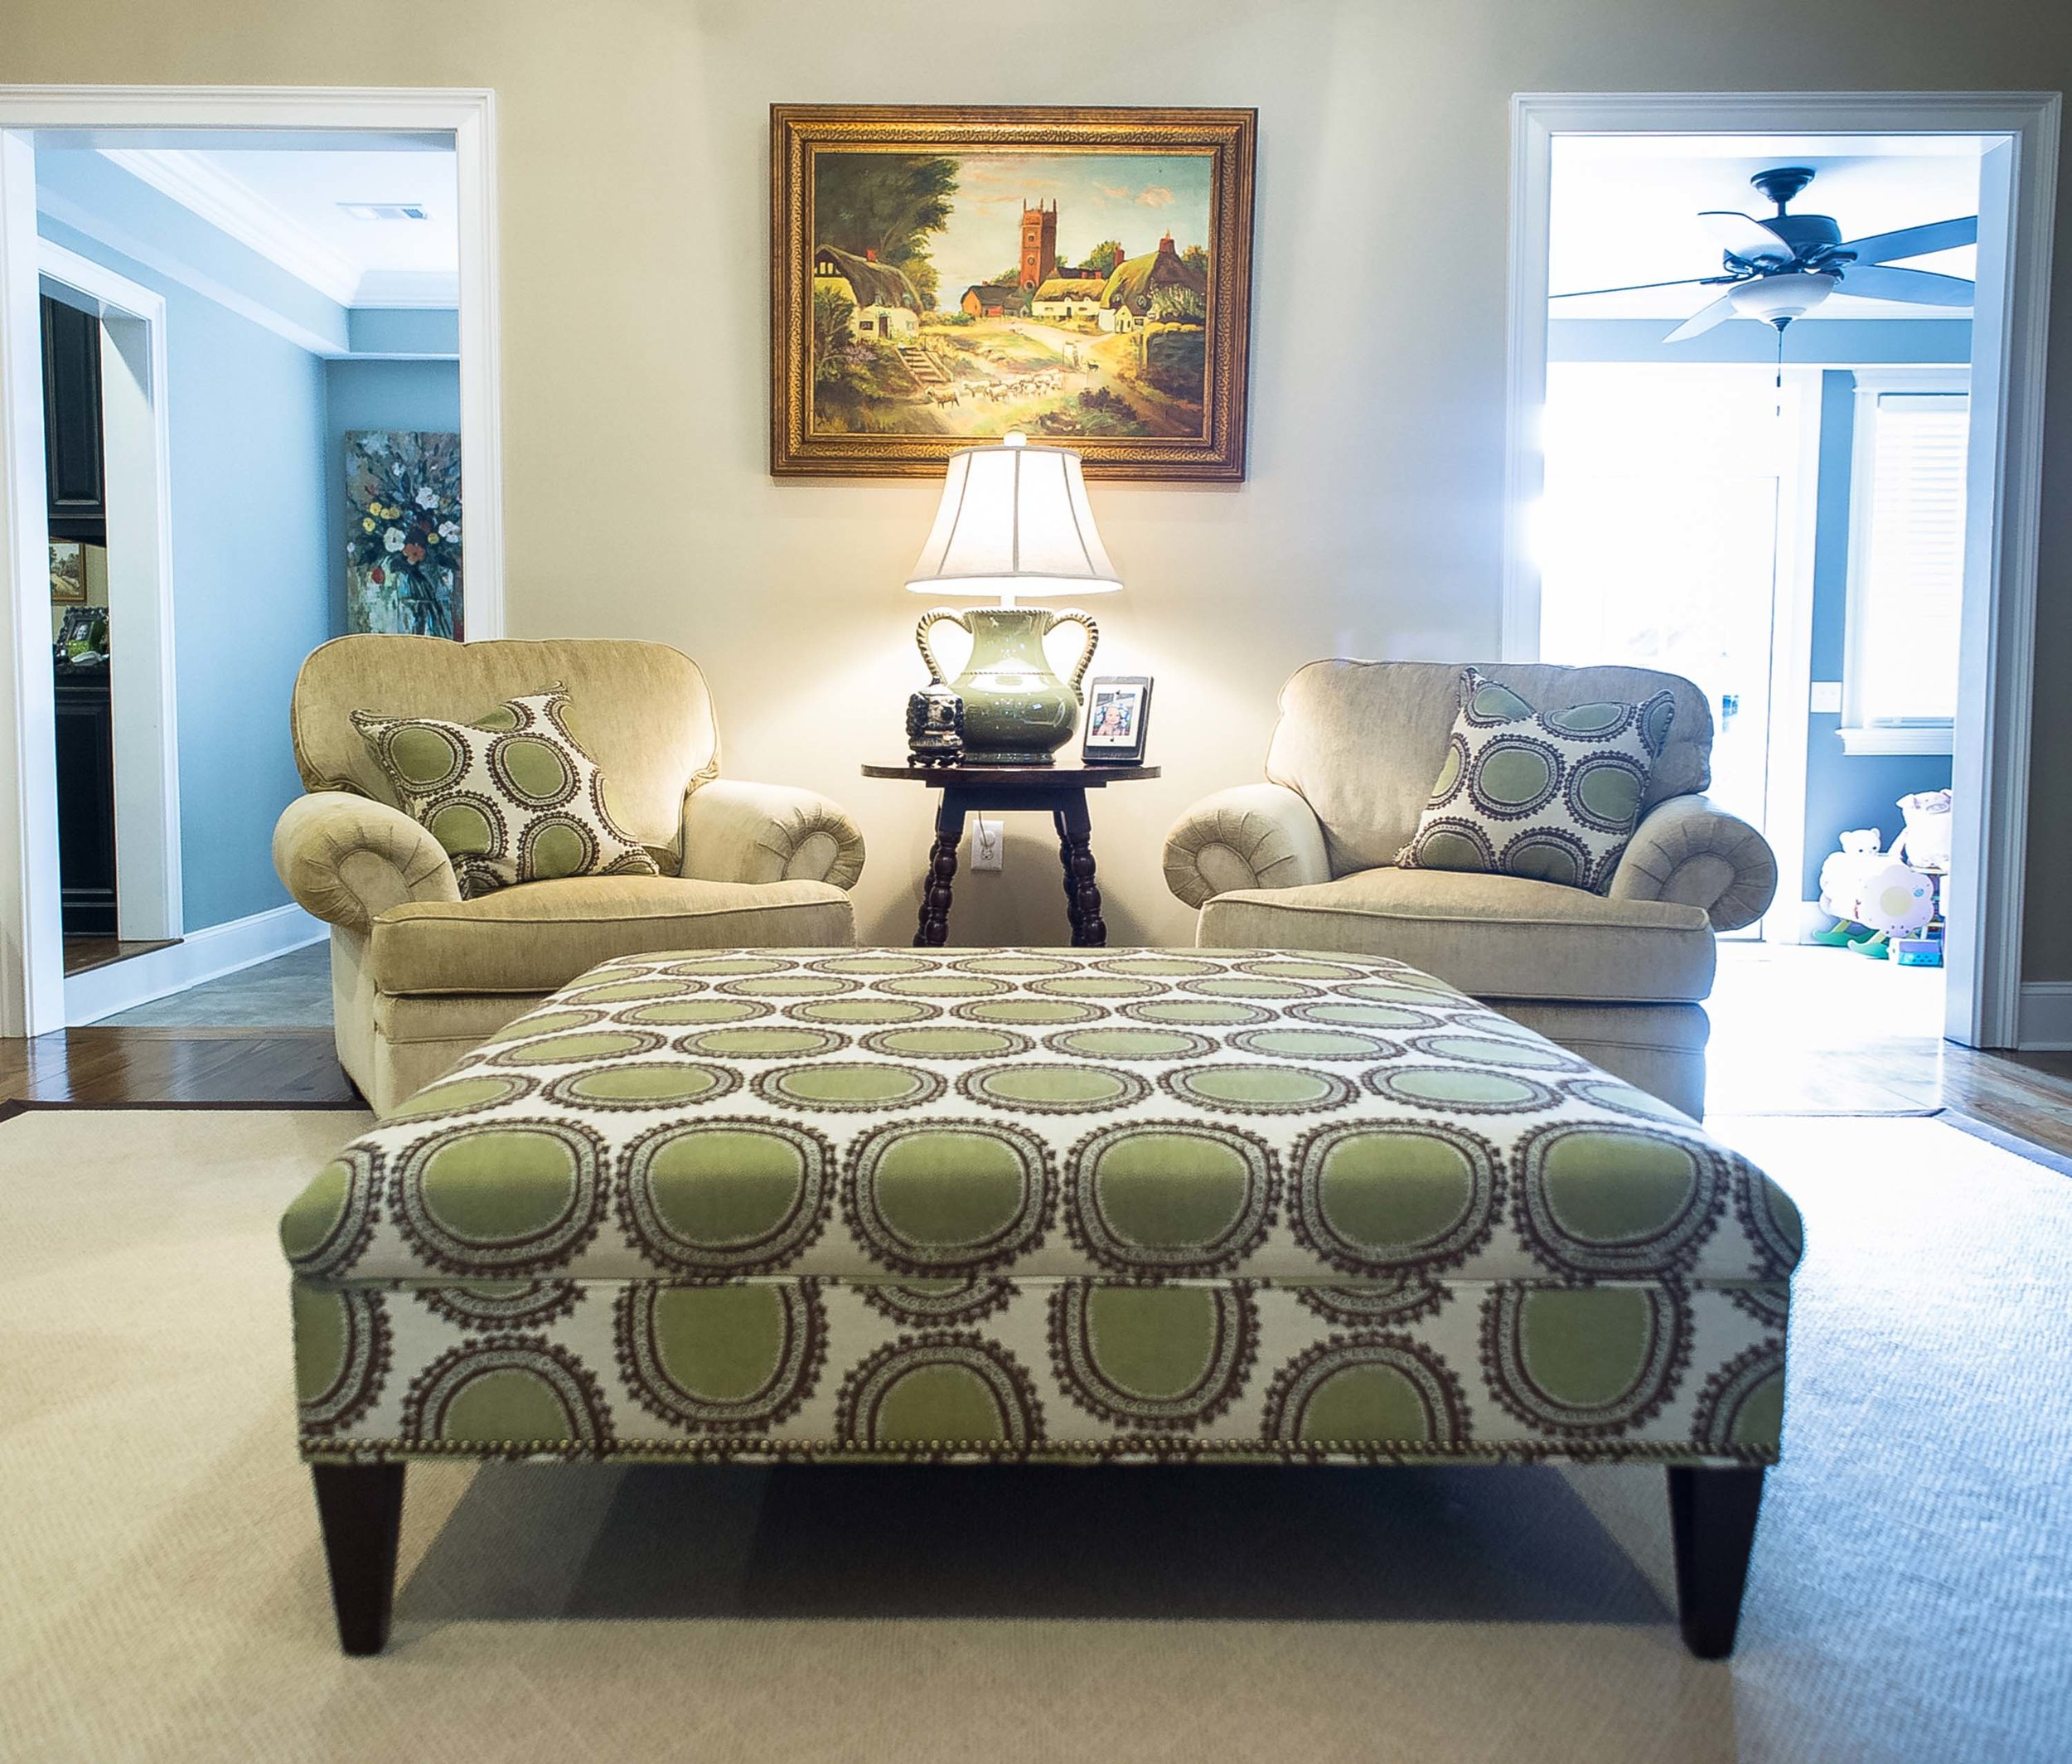 Printed ottoman with 2 Matching Chairs and Pillows